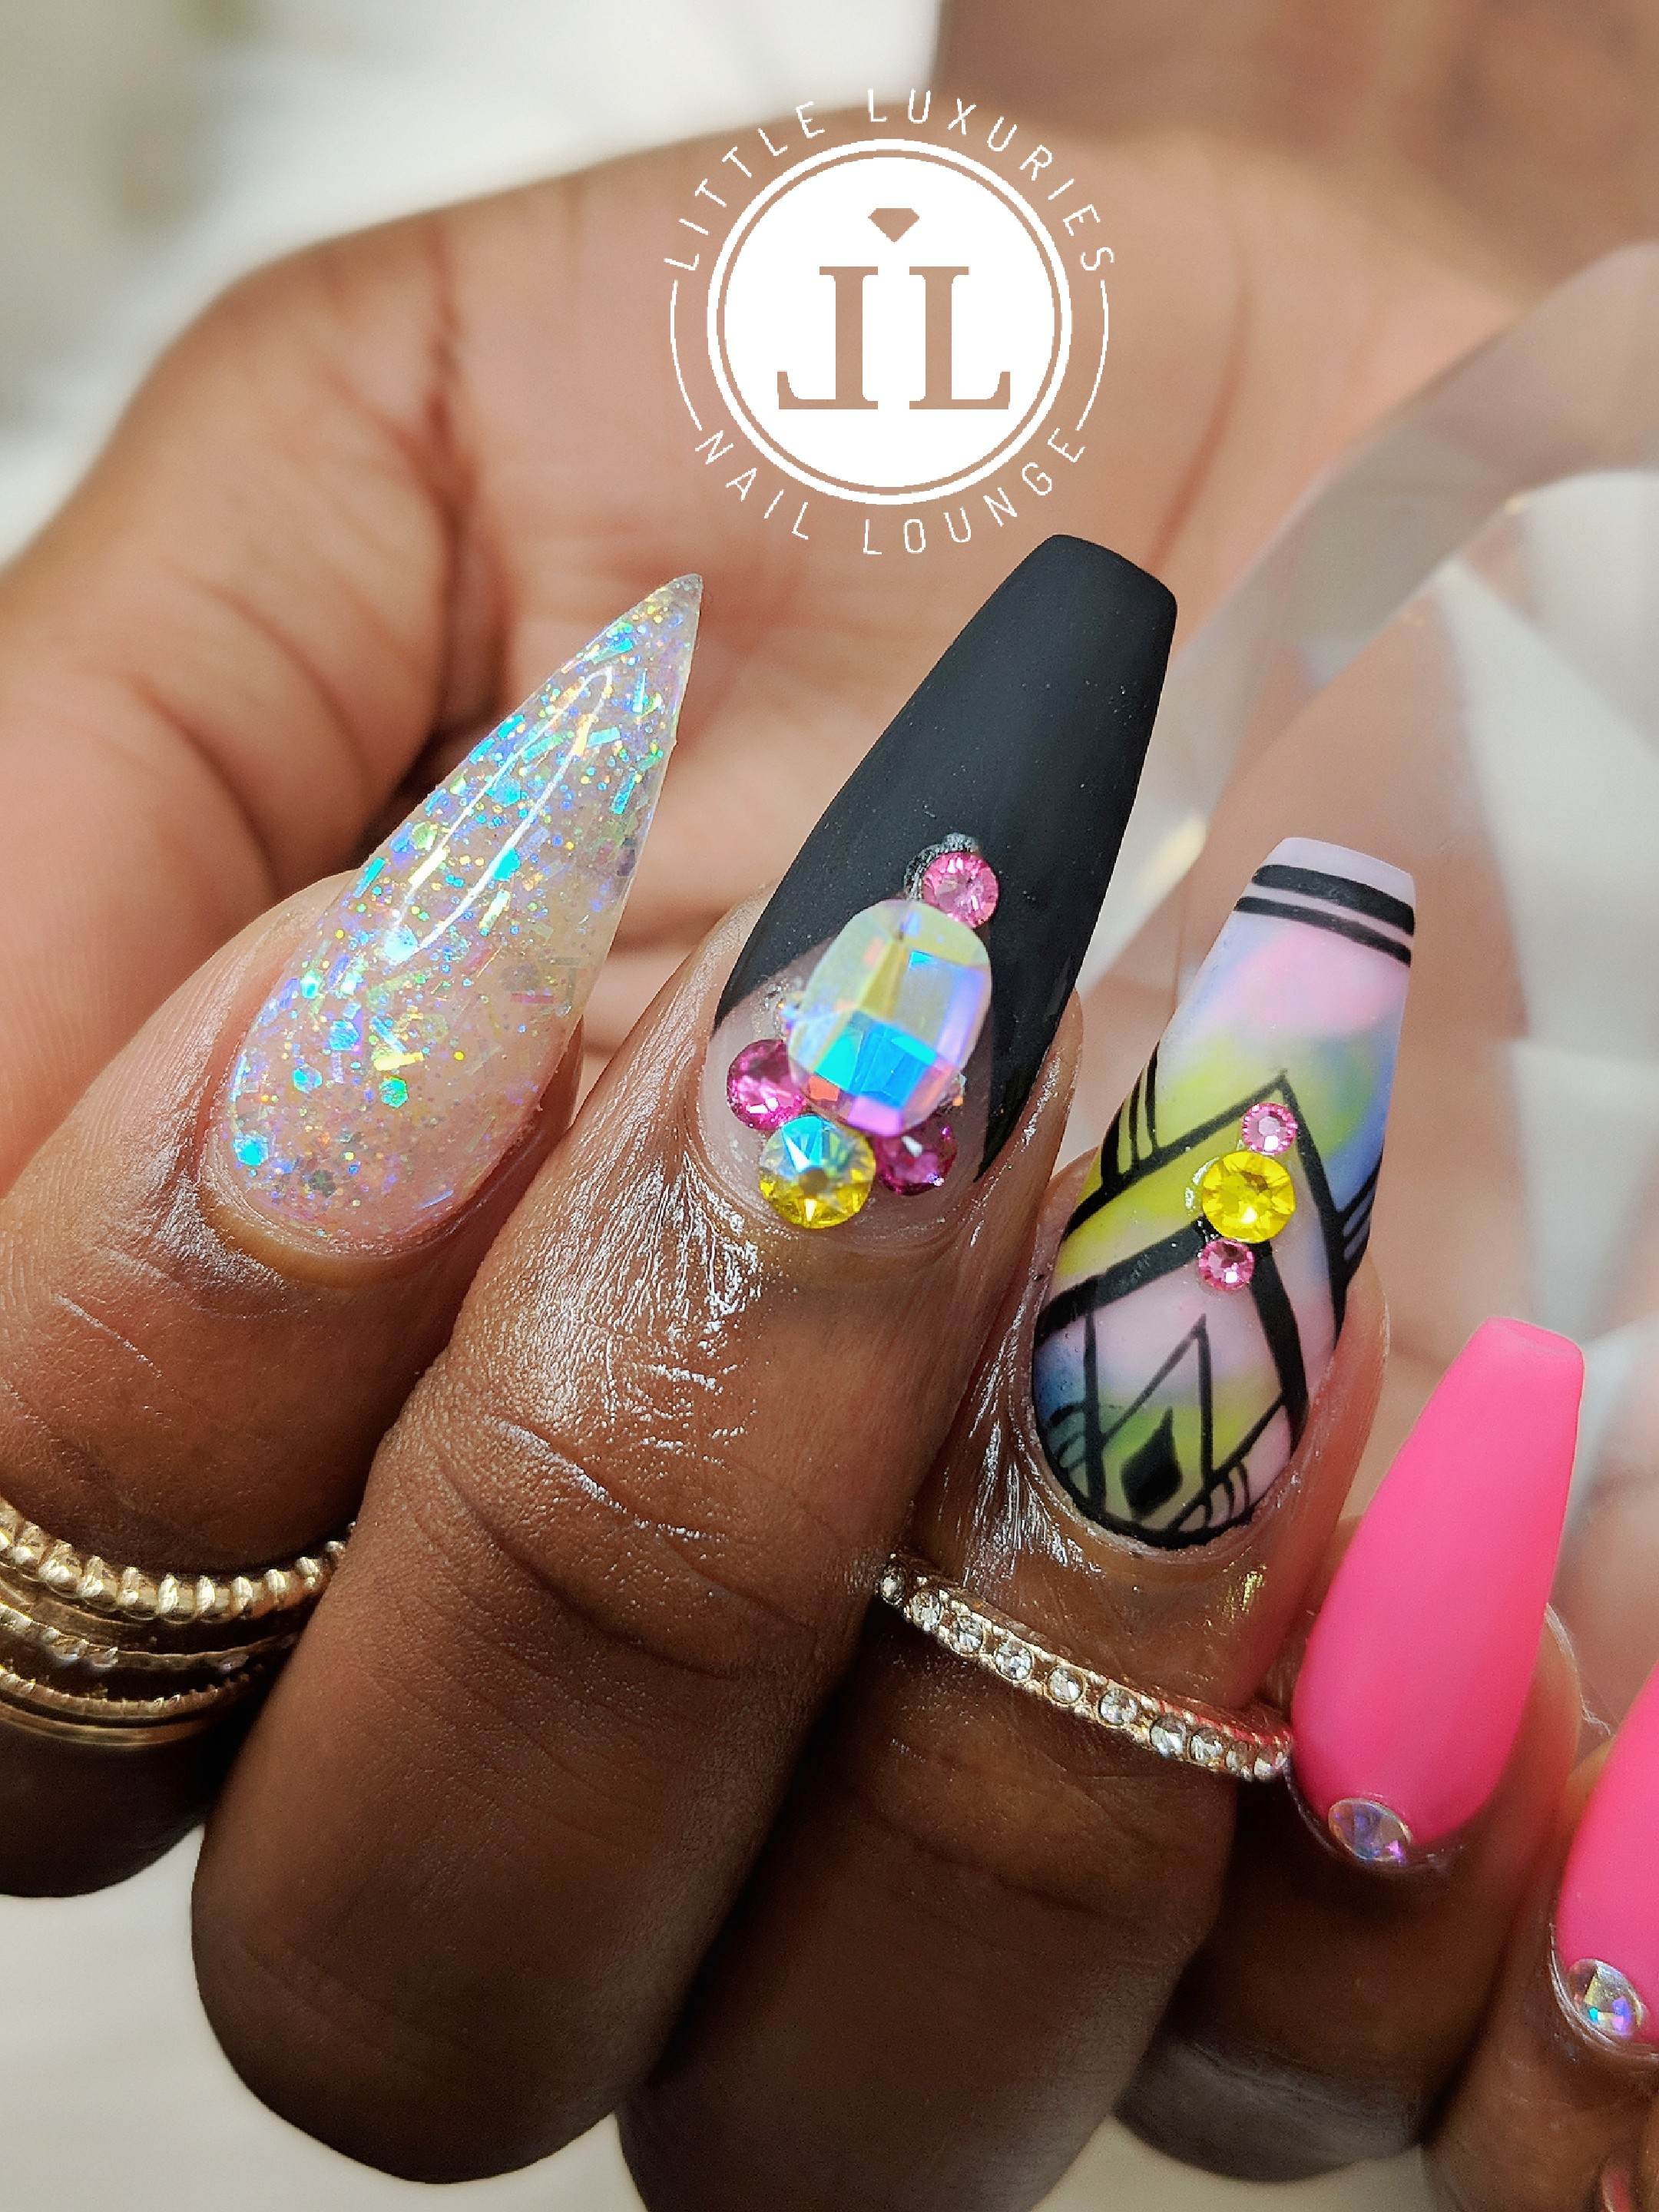 Little Luxuries Nail Lounge| Uptown Minneapolis | Top Quality Nails